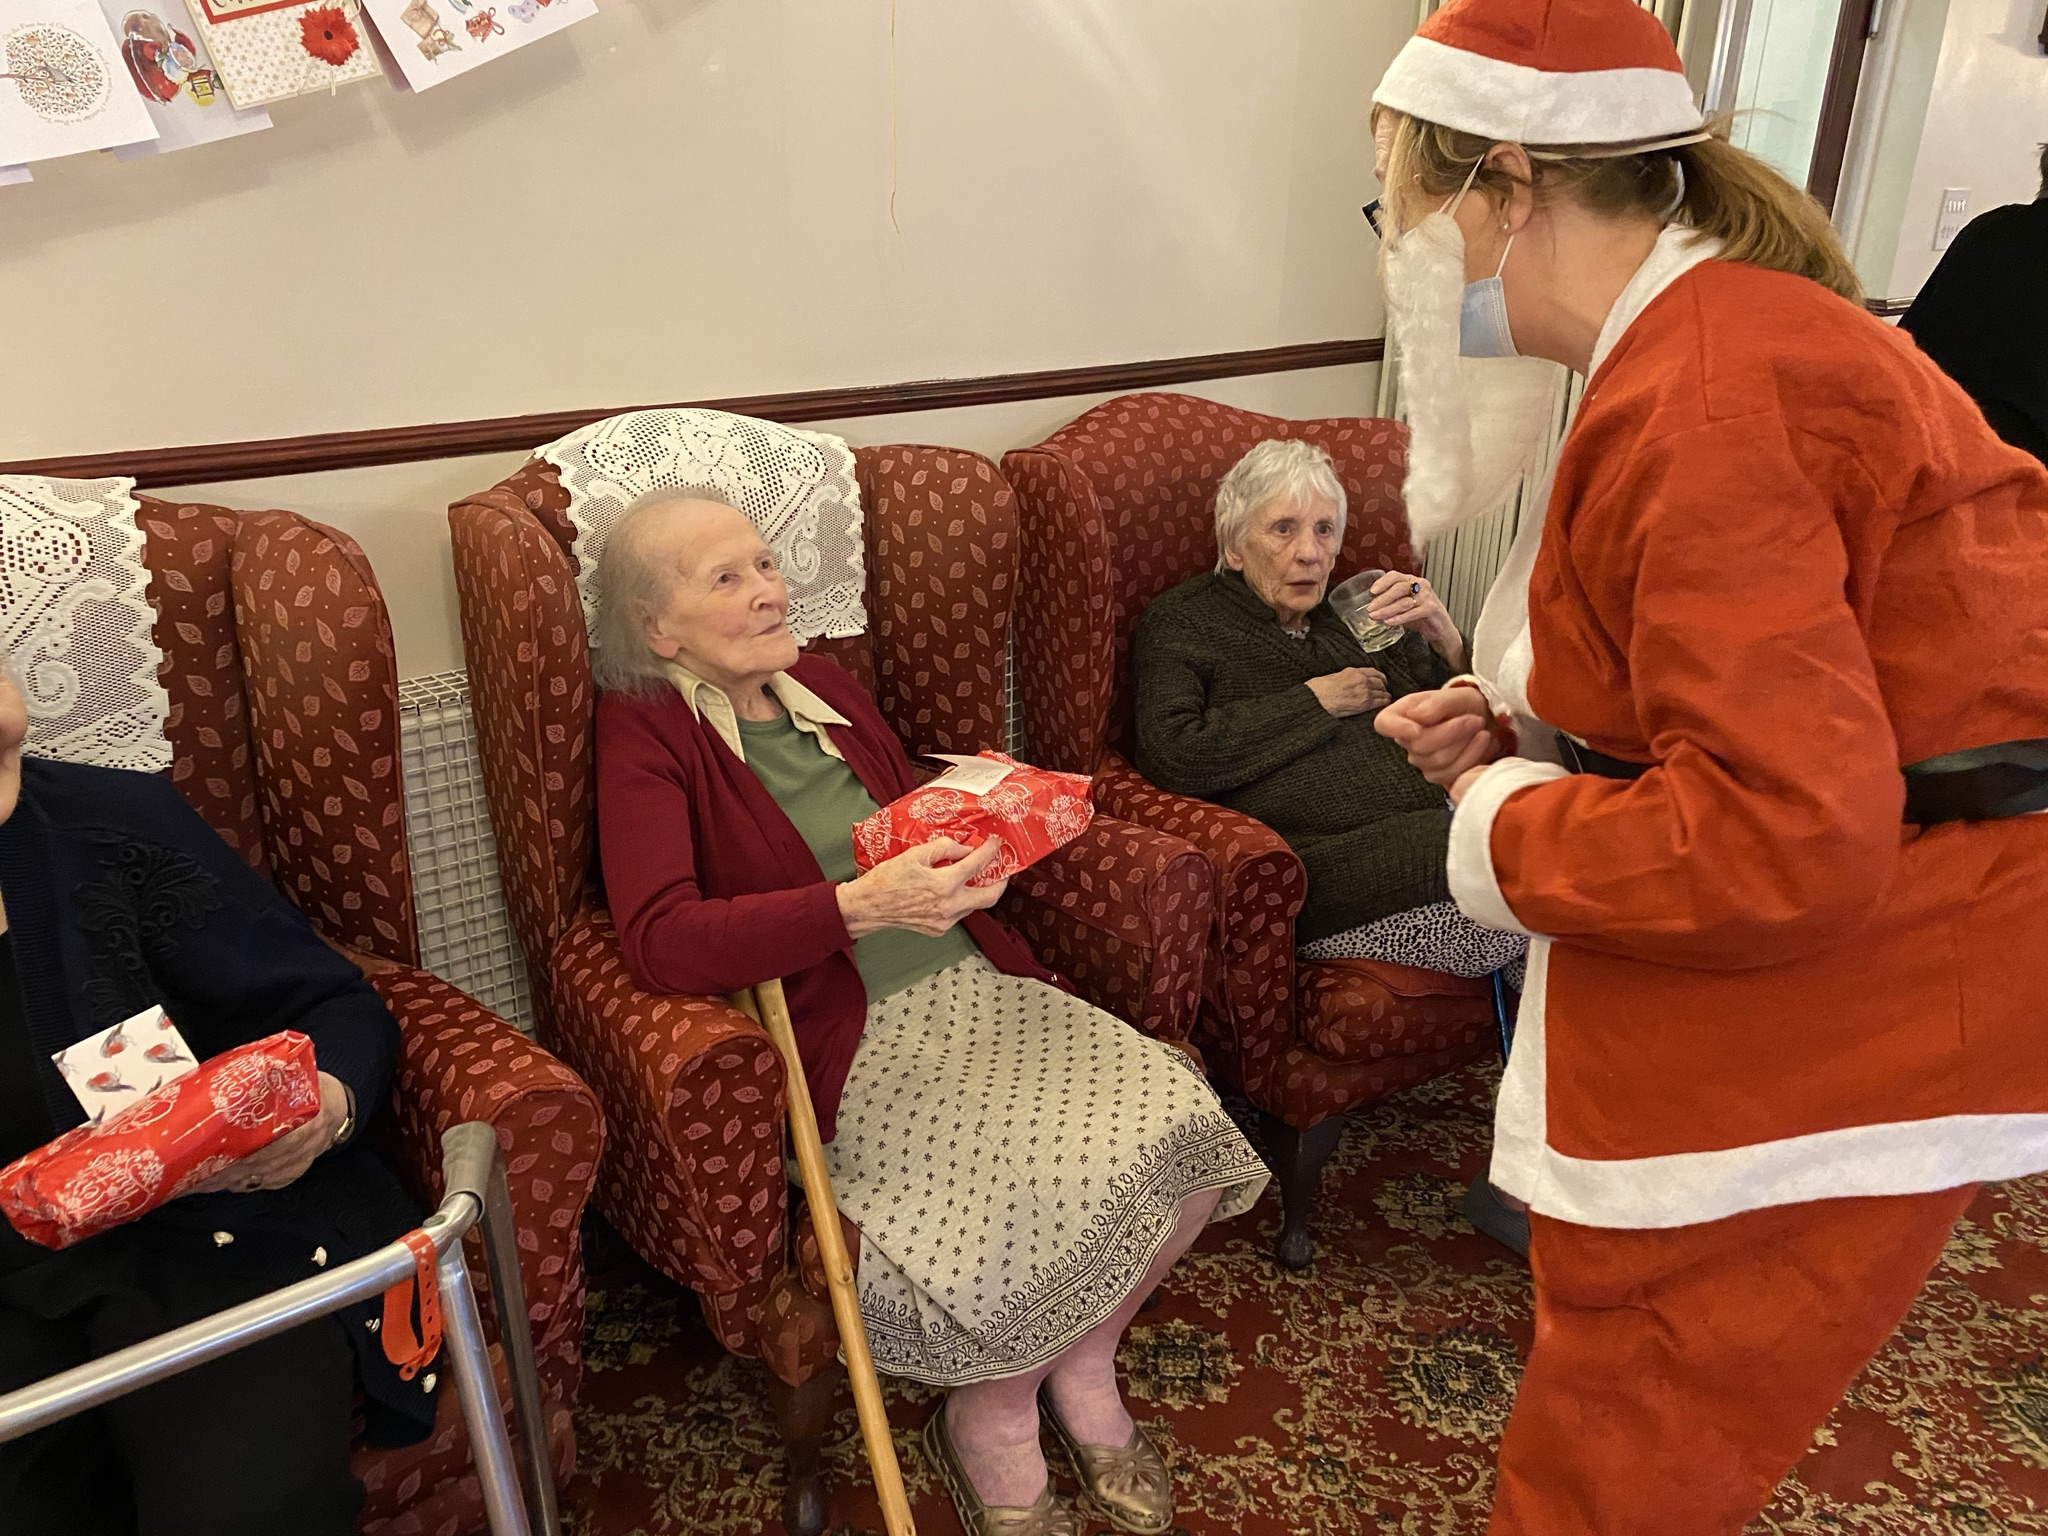 Santa Came to Visit! - 23.12.20 - Please see our Christmas 2020 Page by clicking on the image!